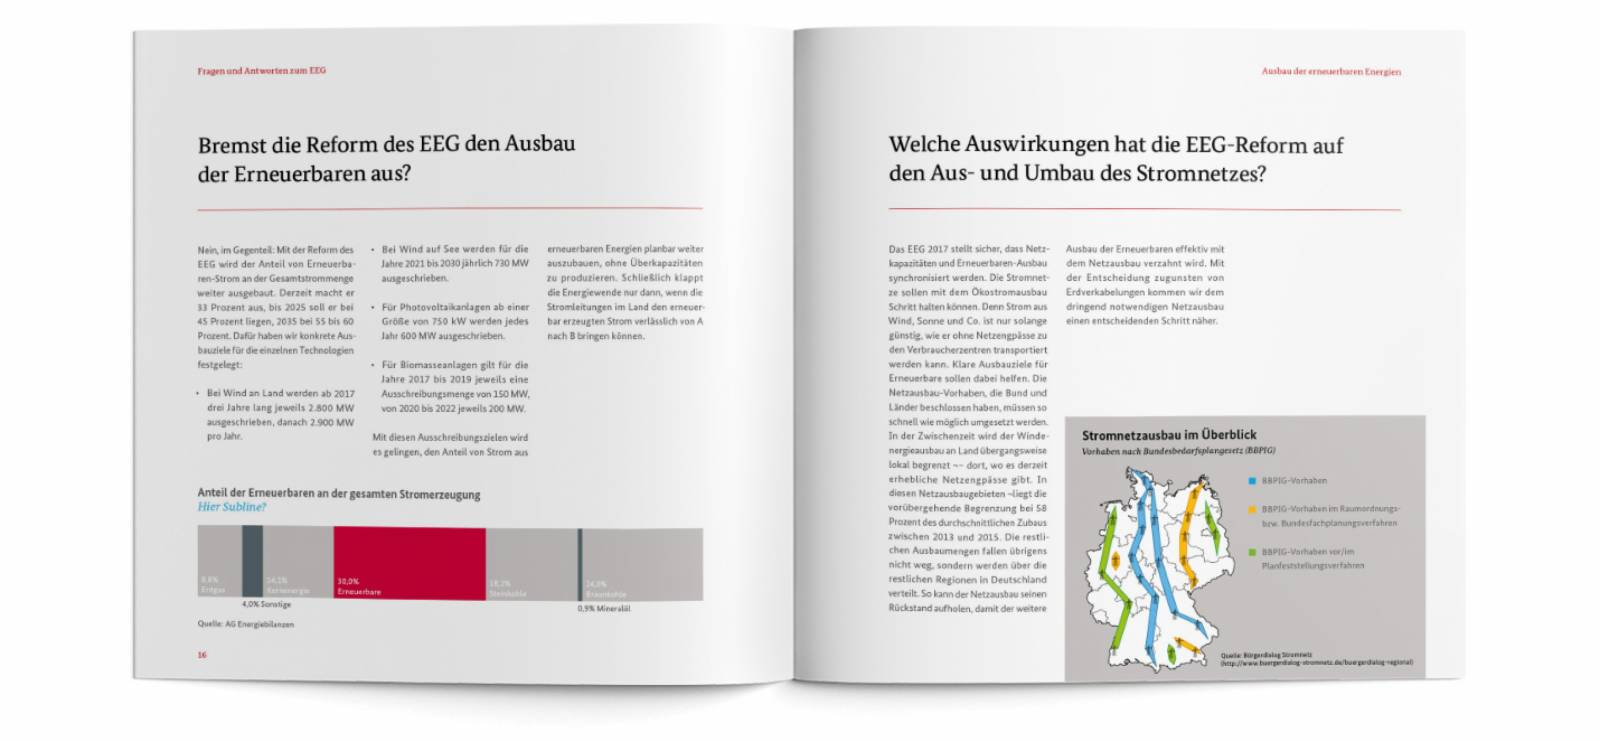 ETPTT, BMWI booklet, Energiewende, layout, typesetting, final artwork